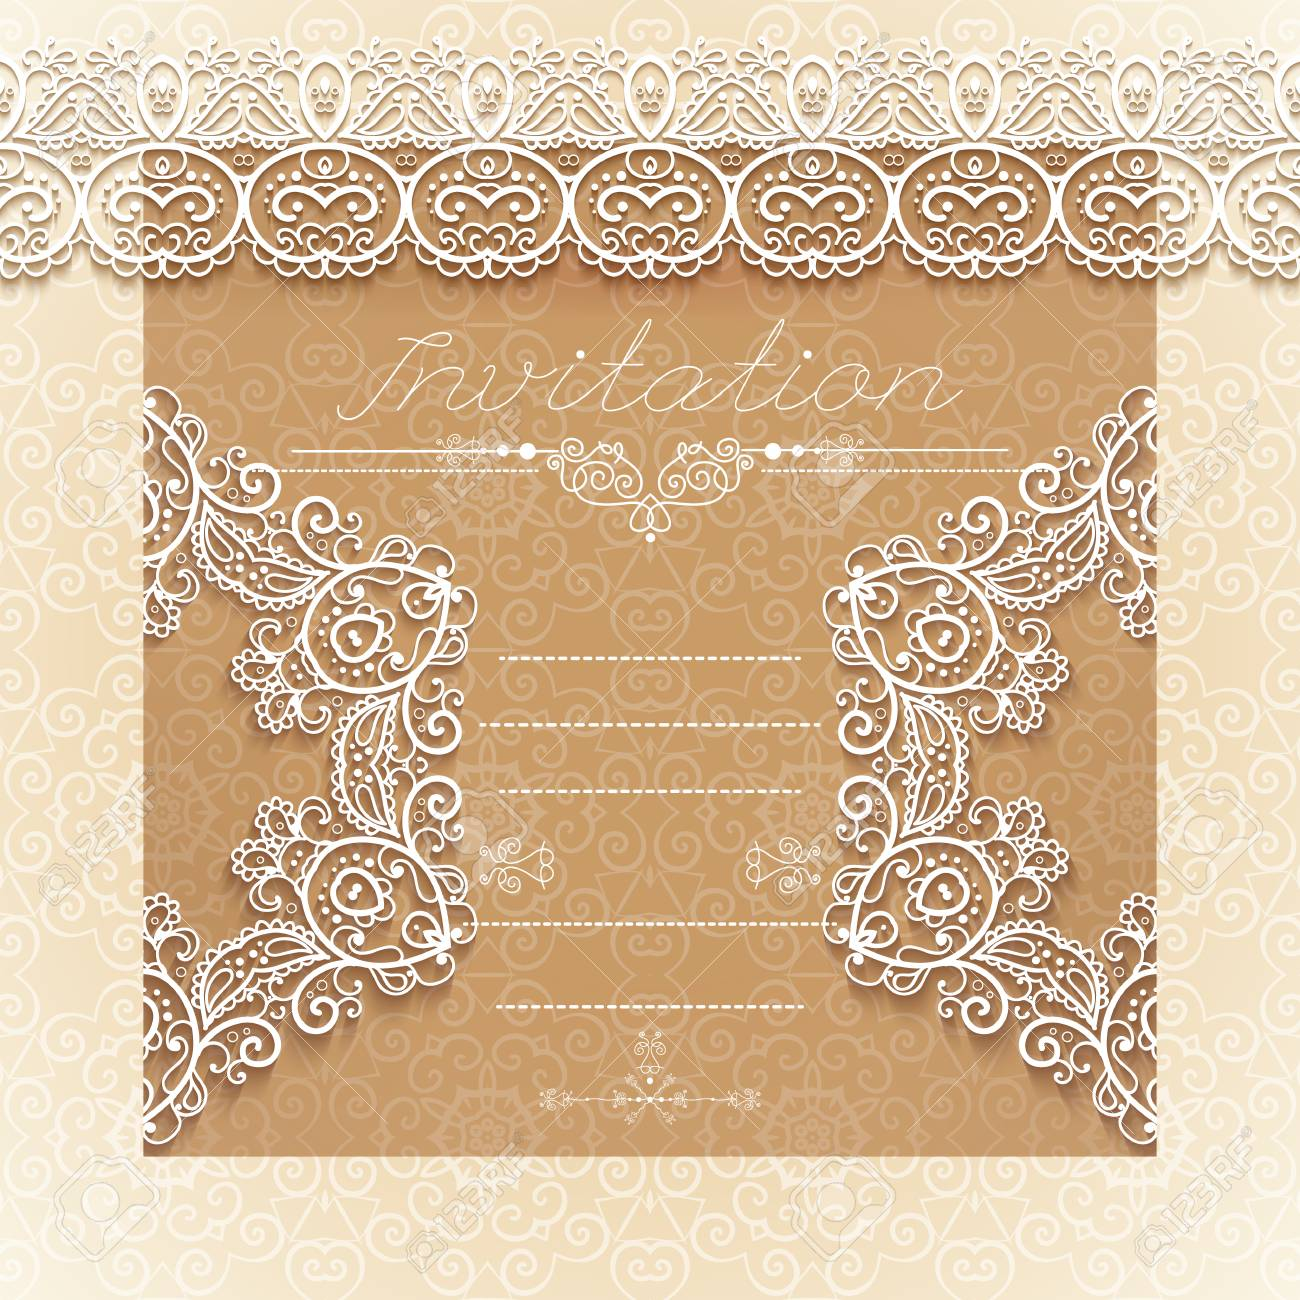 904c81f0a3 Vintage Wedding card or invitation with abstract lace seamless background  and borders. vector. Stock